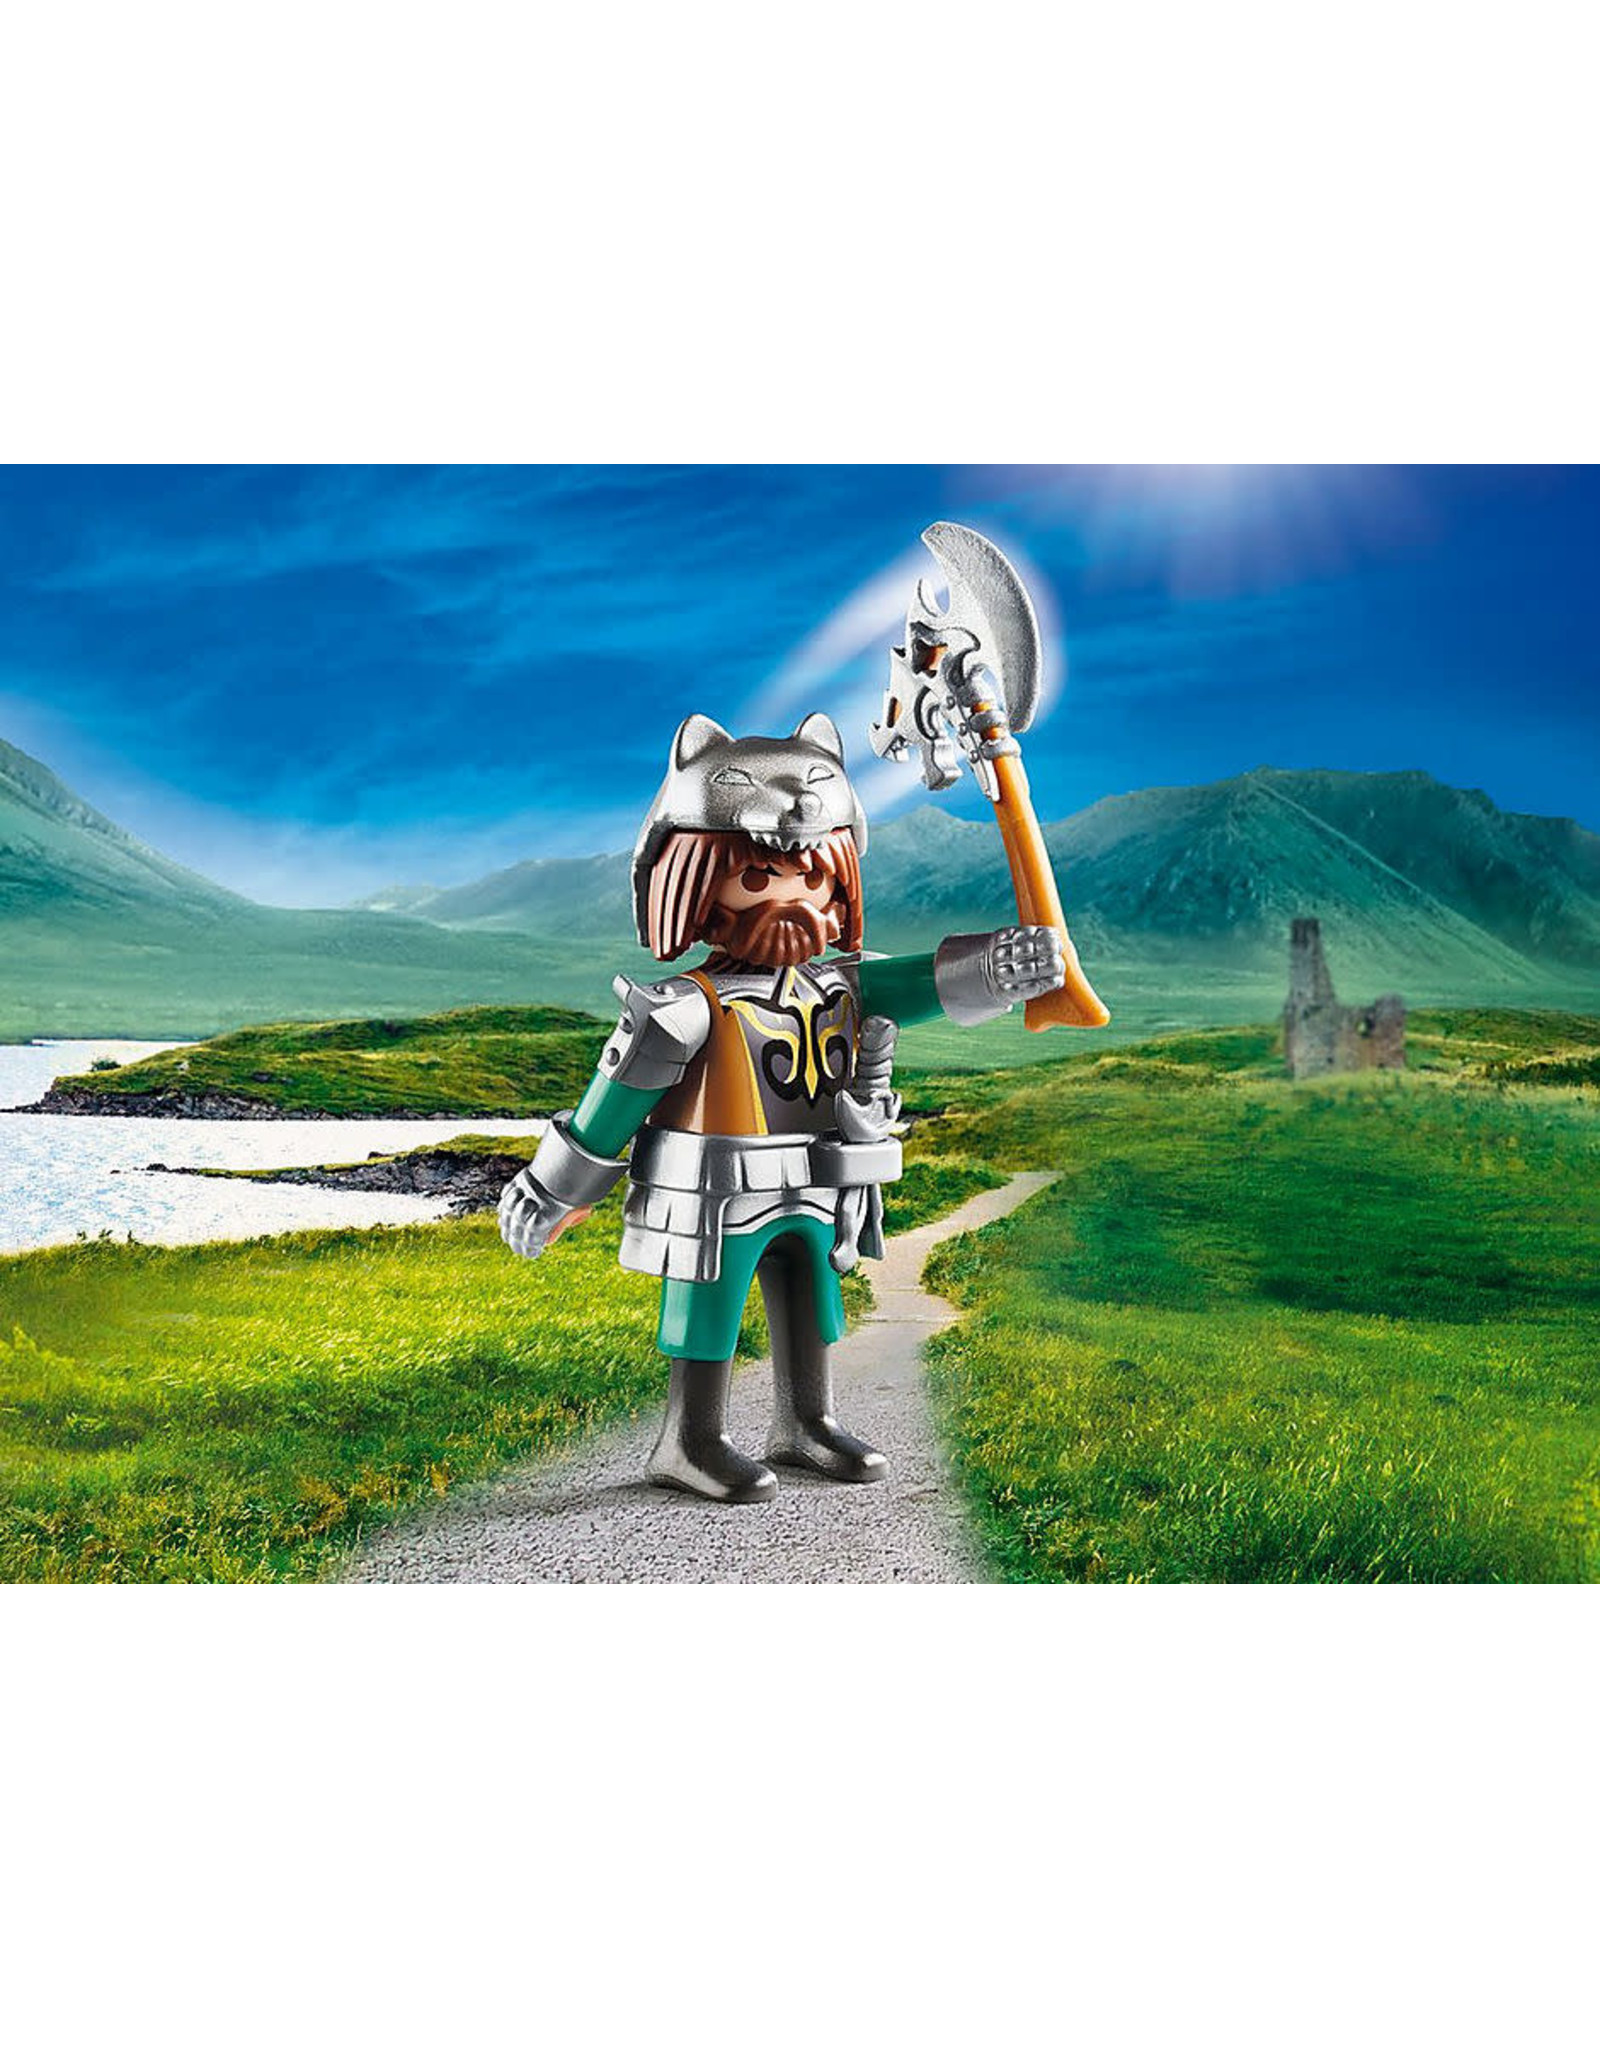 Playmobil Playmo-Friends Wolves Knight